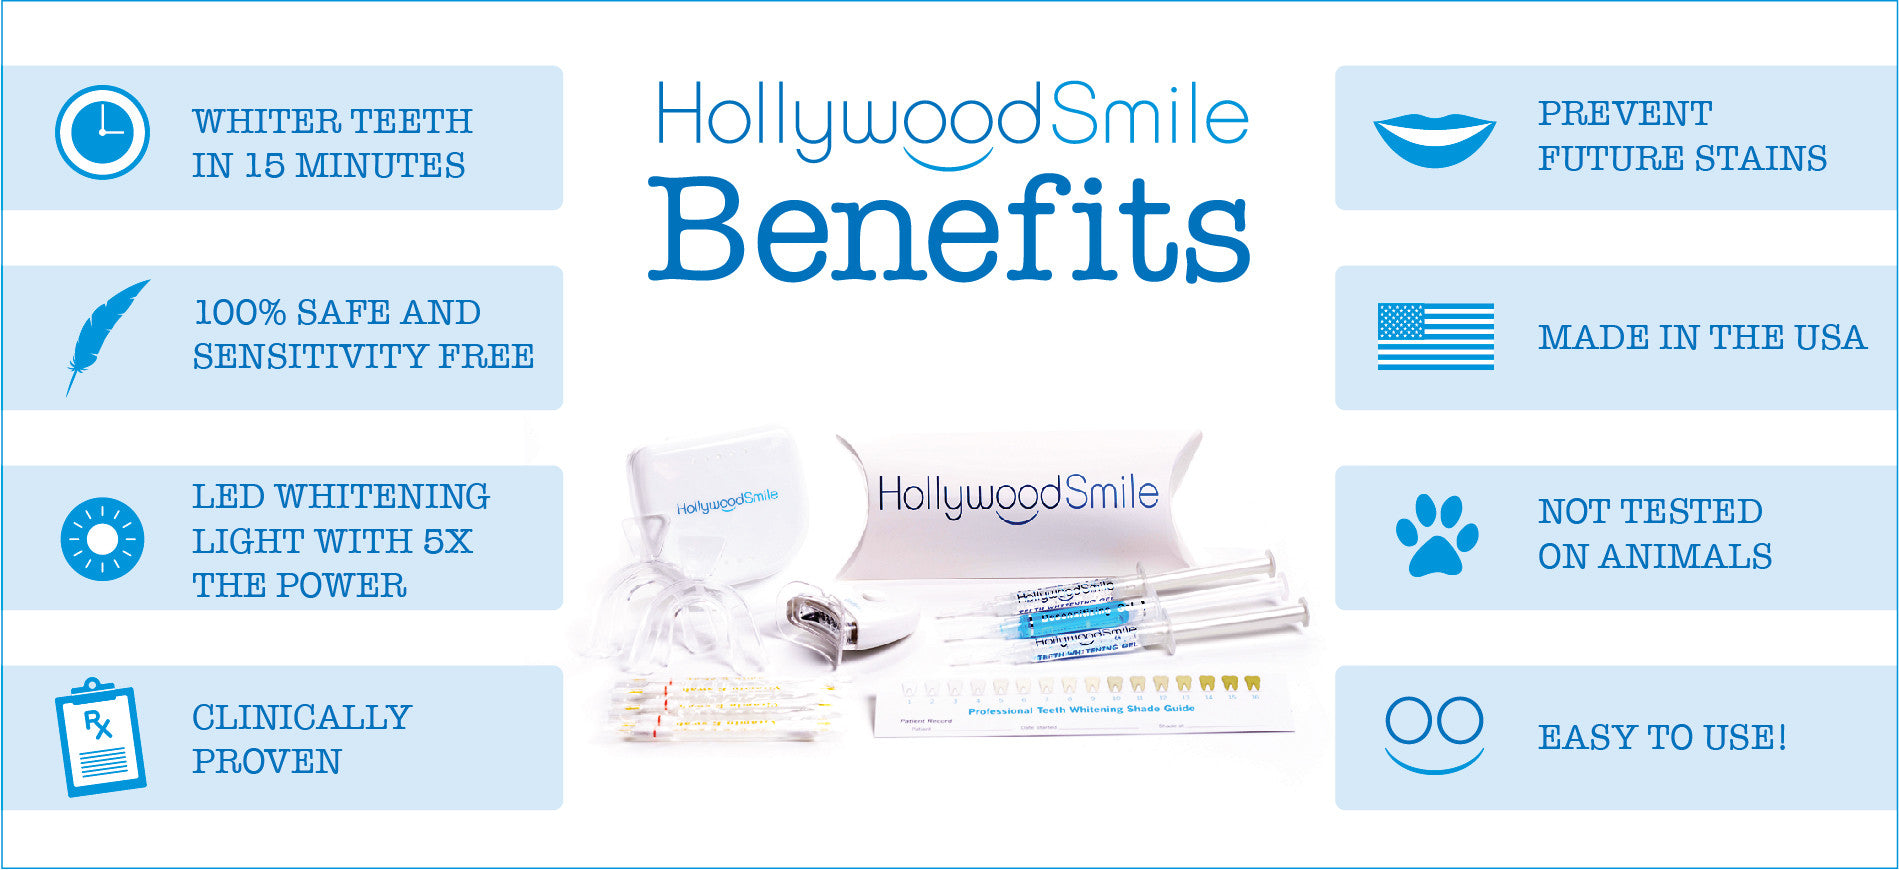 Hollywood Smile Benefits